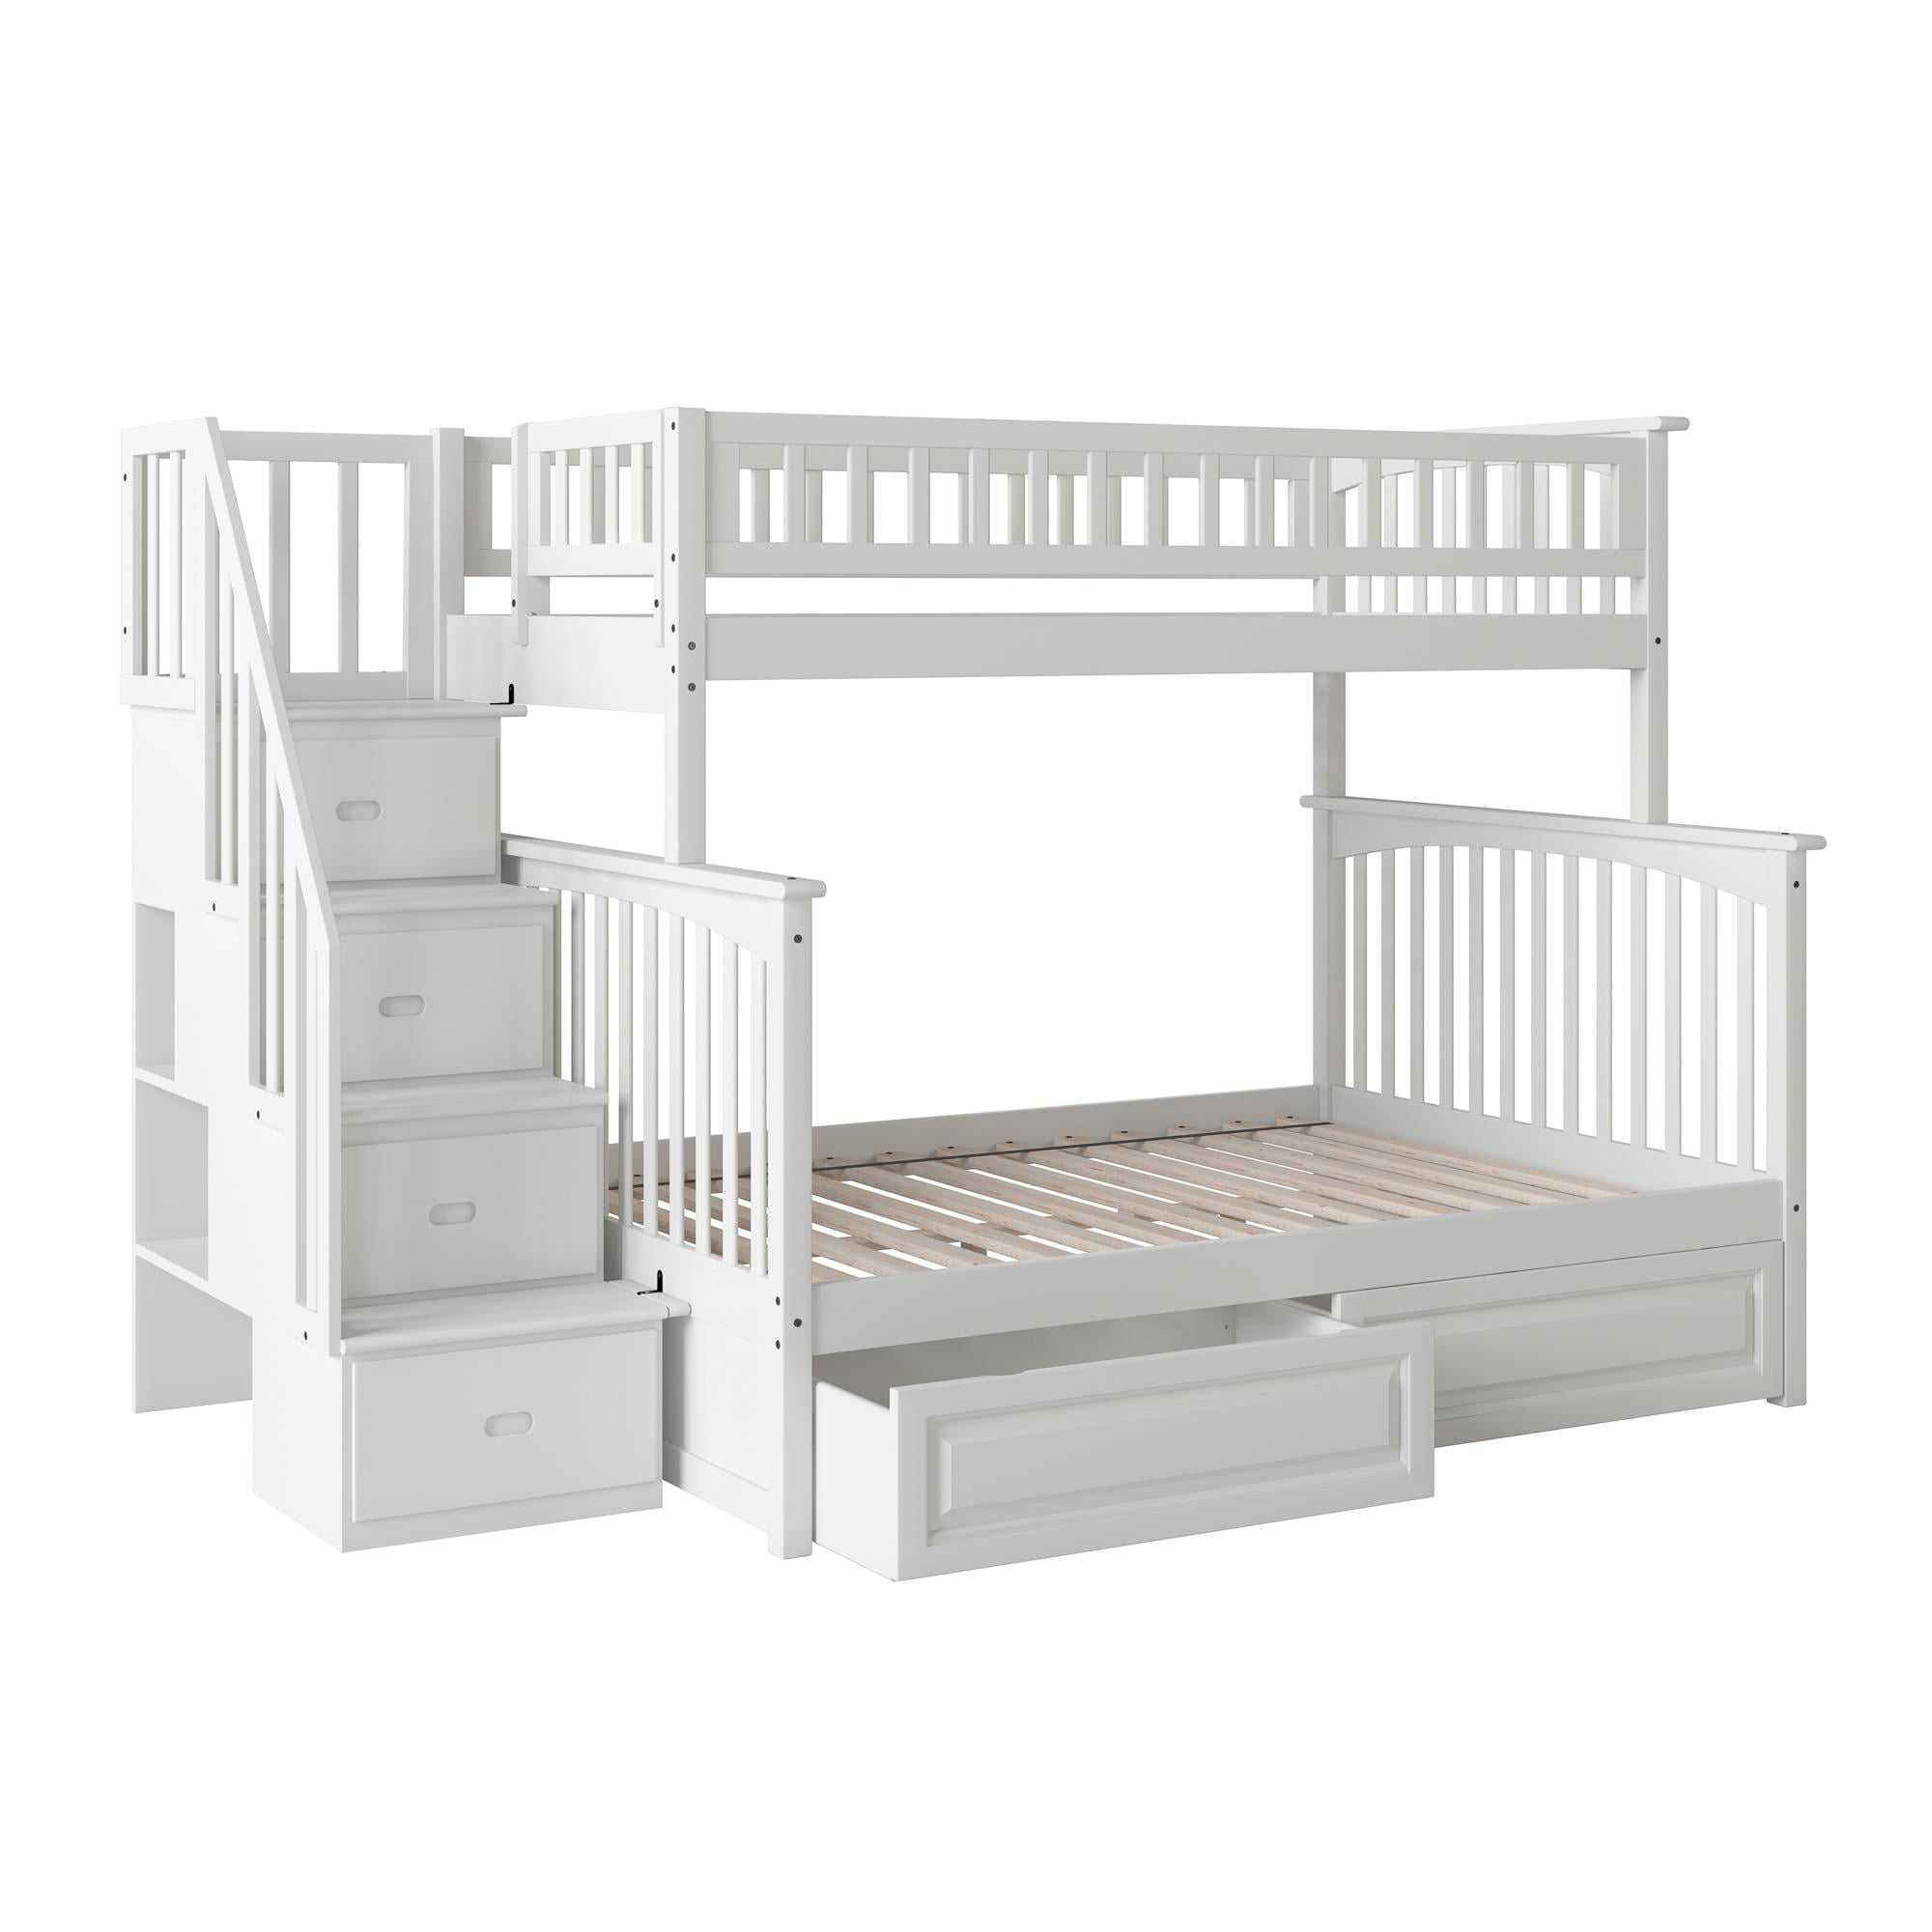 Columbia Staircase Bunk Bed Twin Over Full With 2 Raised Panel Bed Drawers In White Walmart Com Walmart Com